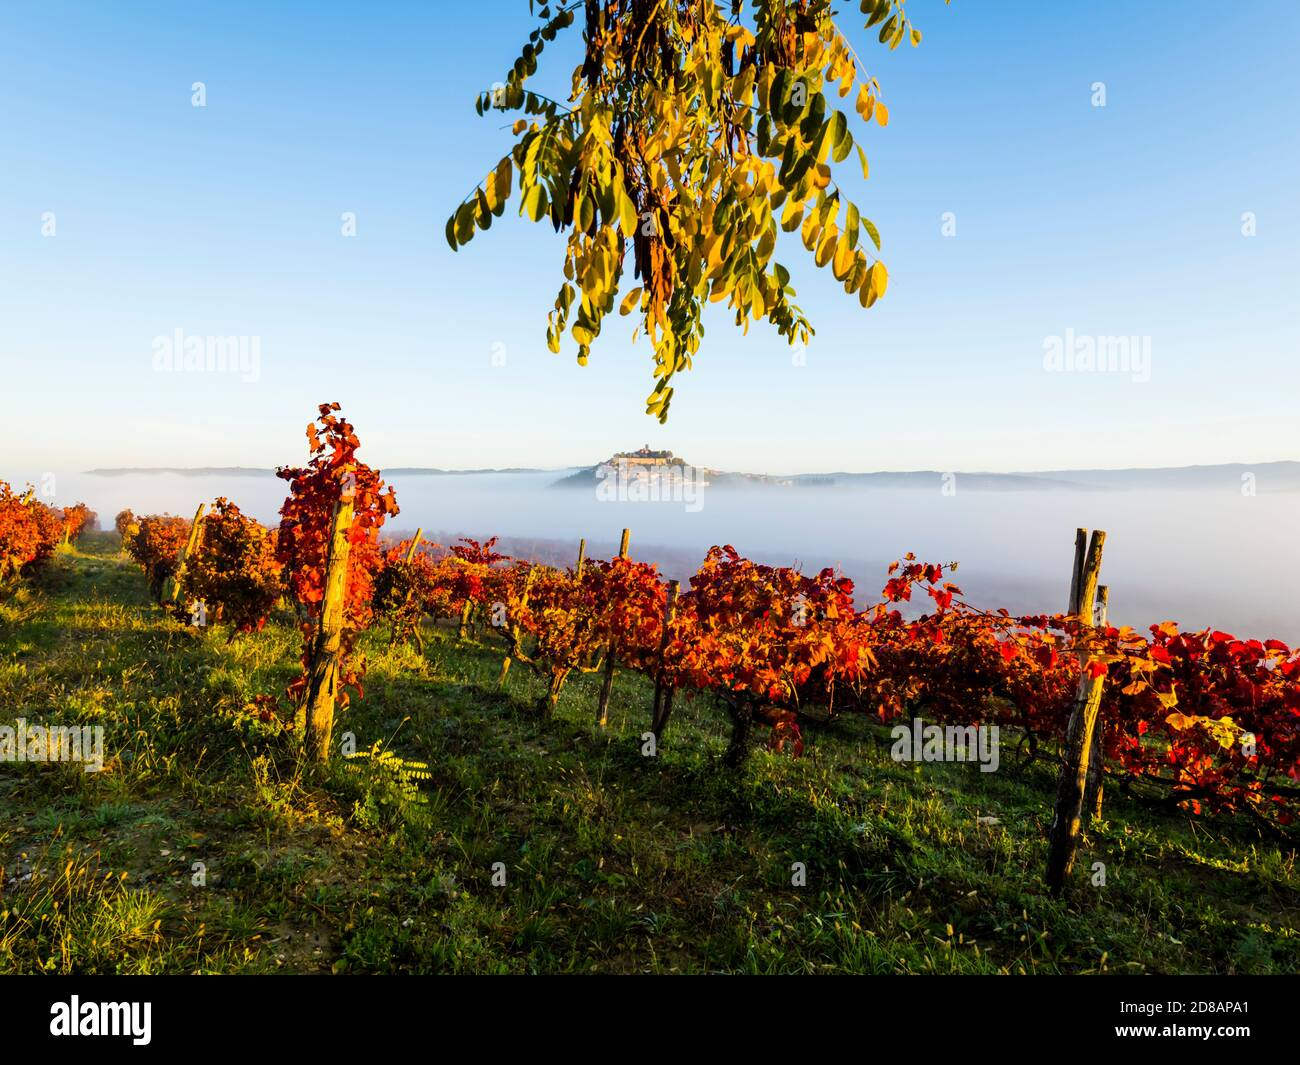 Morning fog landscape Motovun in Istria Croatia Europe Red Autumnal leaves vineyard in foreground and oldtown on hilltop protruding through Stock Photo